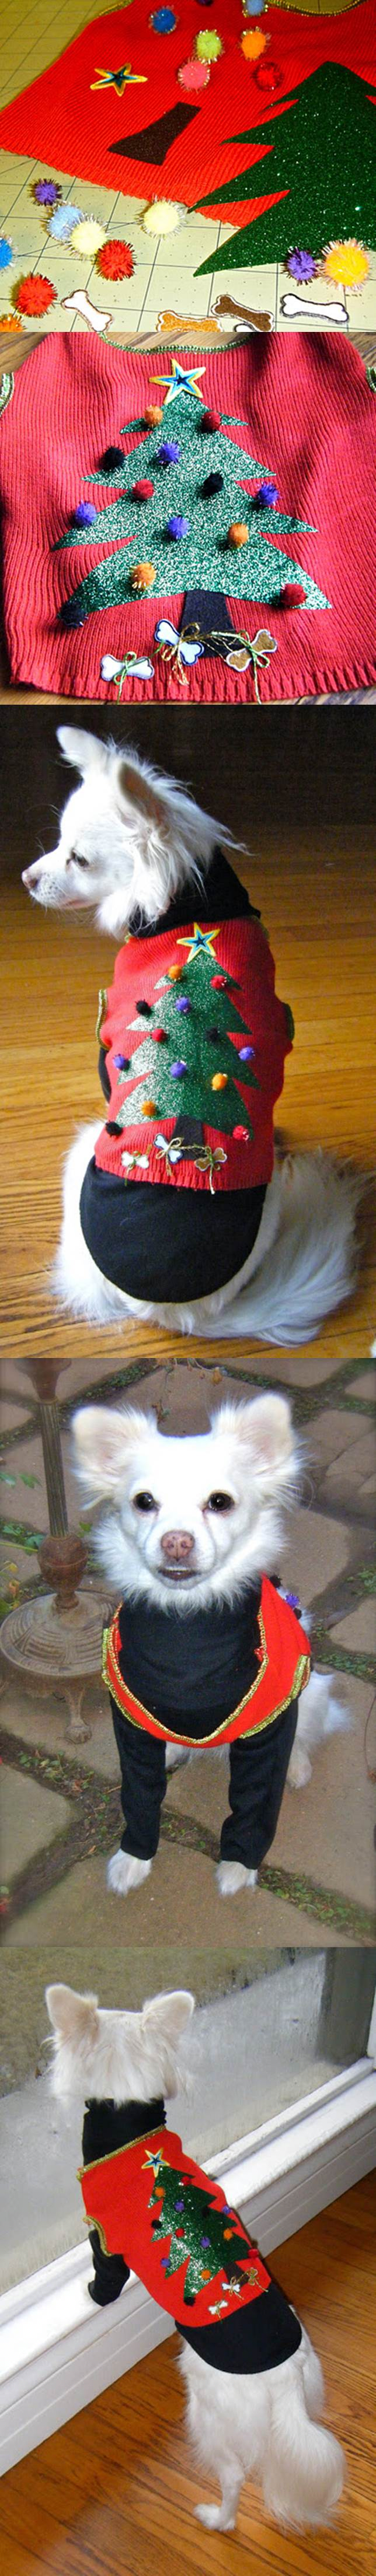 DIY Dog Christmas Sweater 2